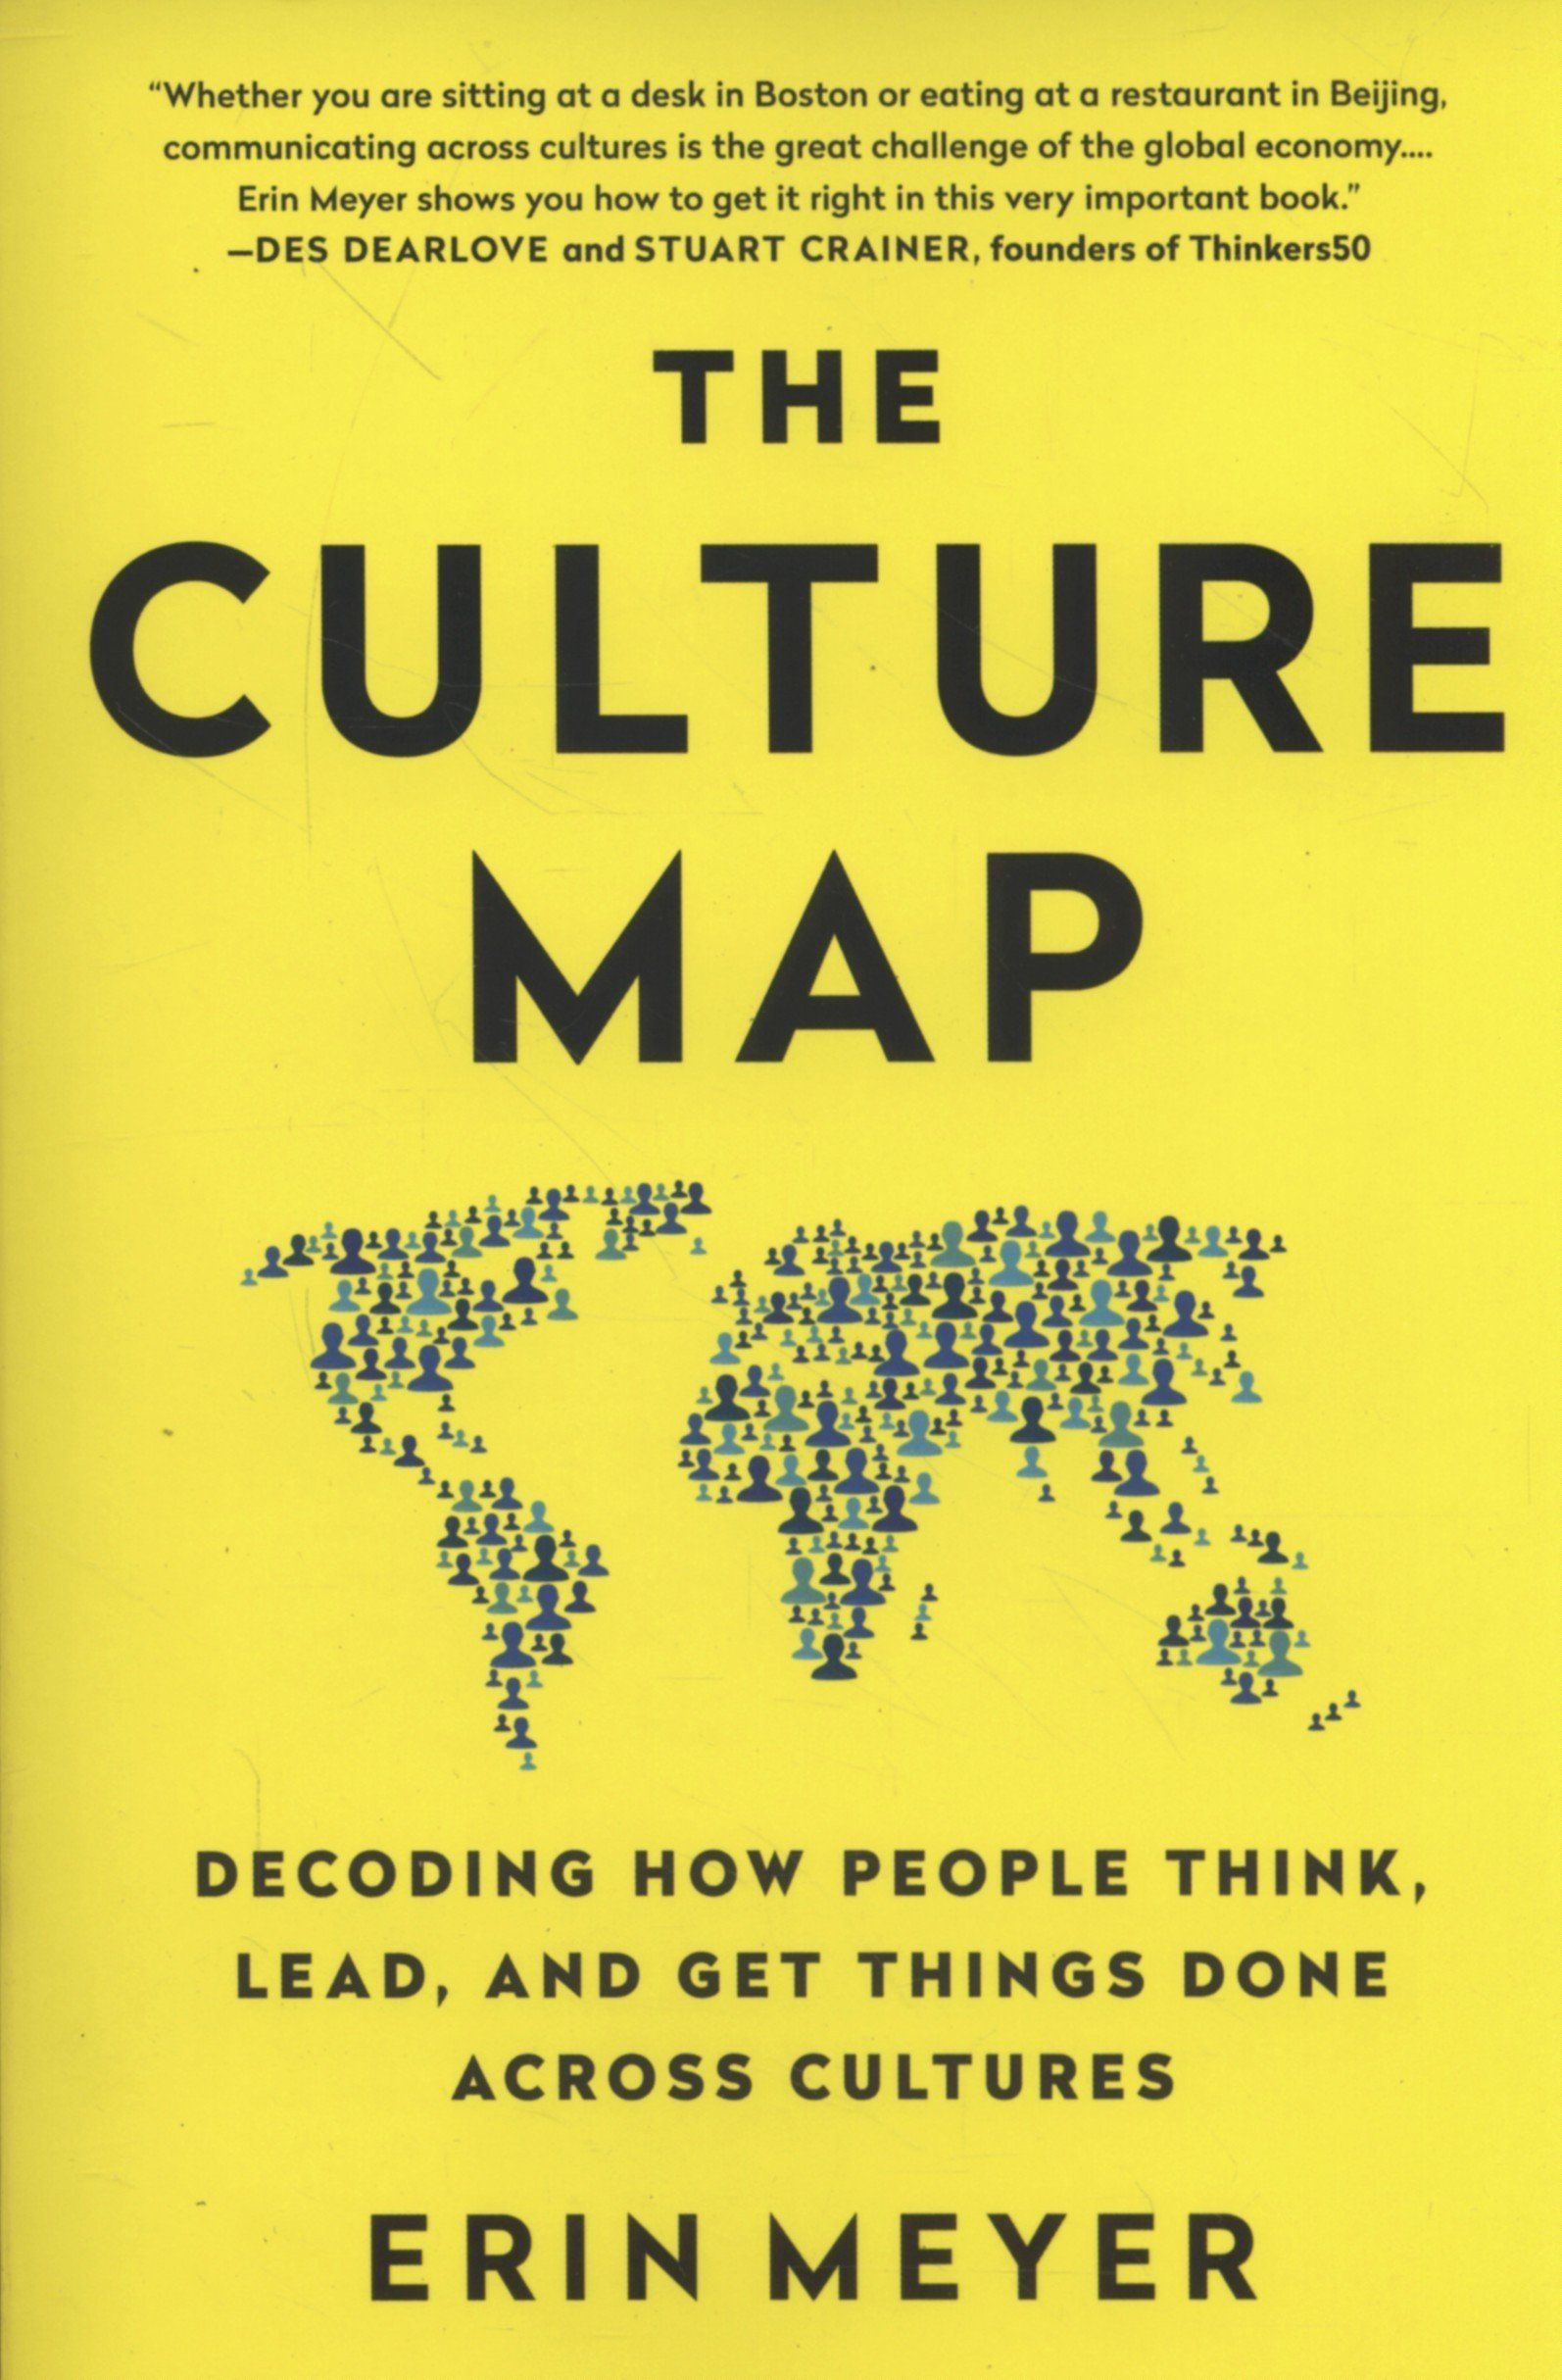 the-culture-map-decoding-how-people-think-lead-and-get-things-done-across-cultures